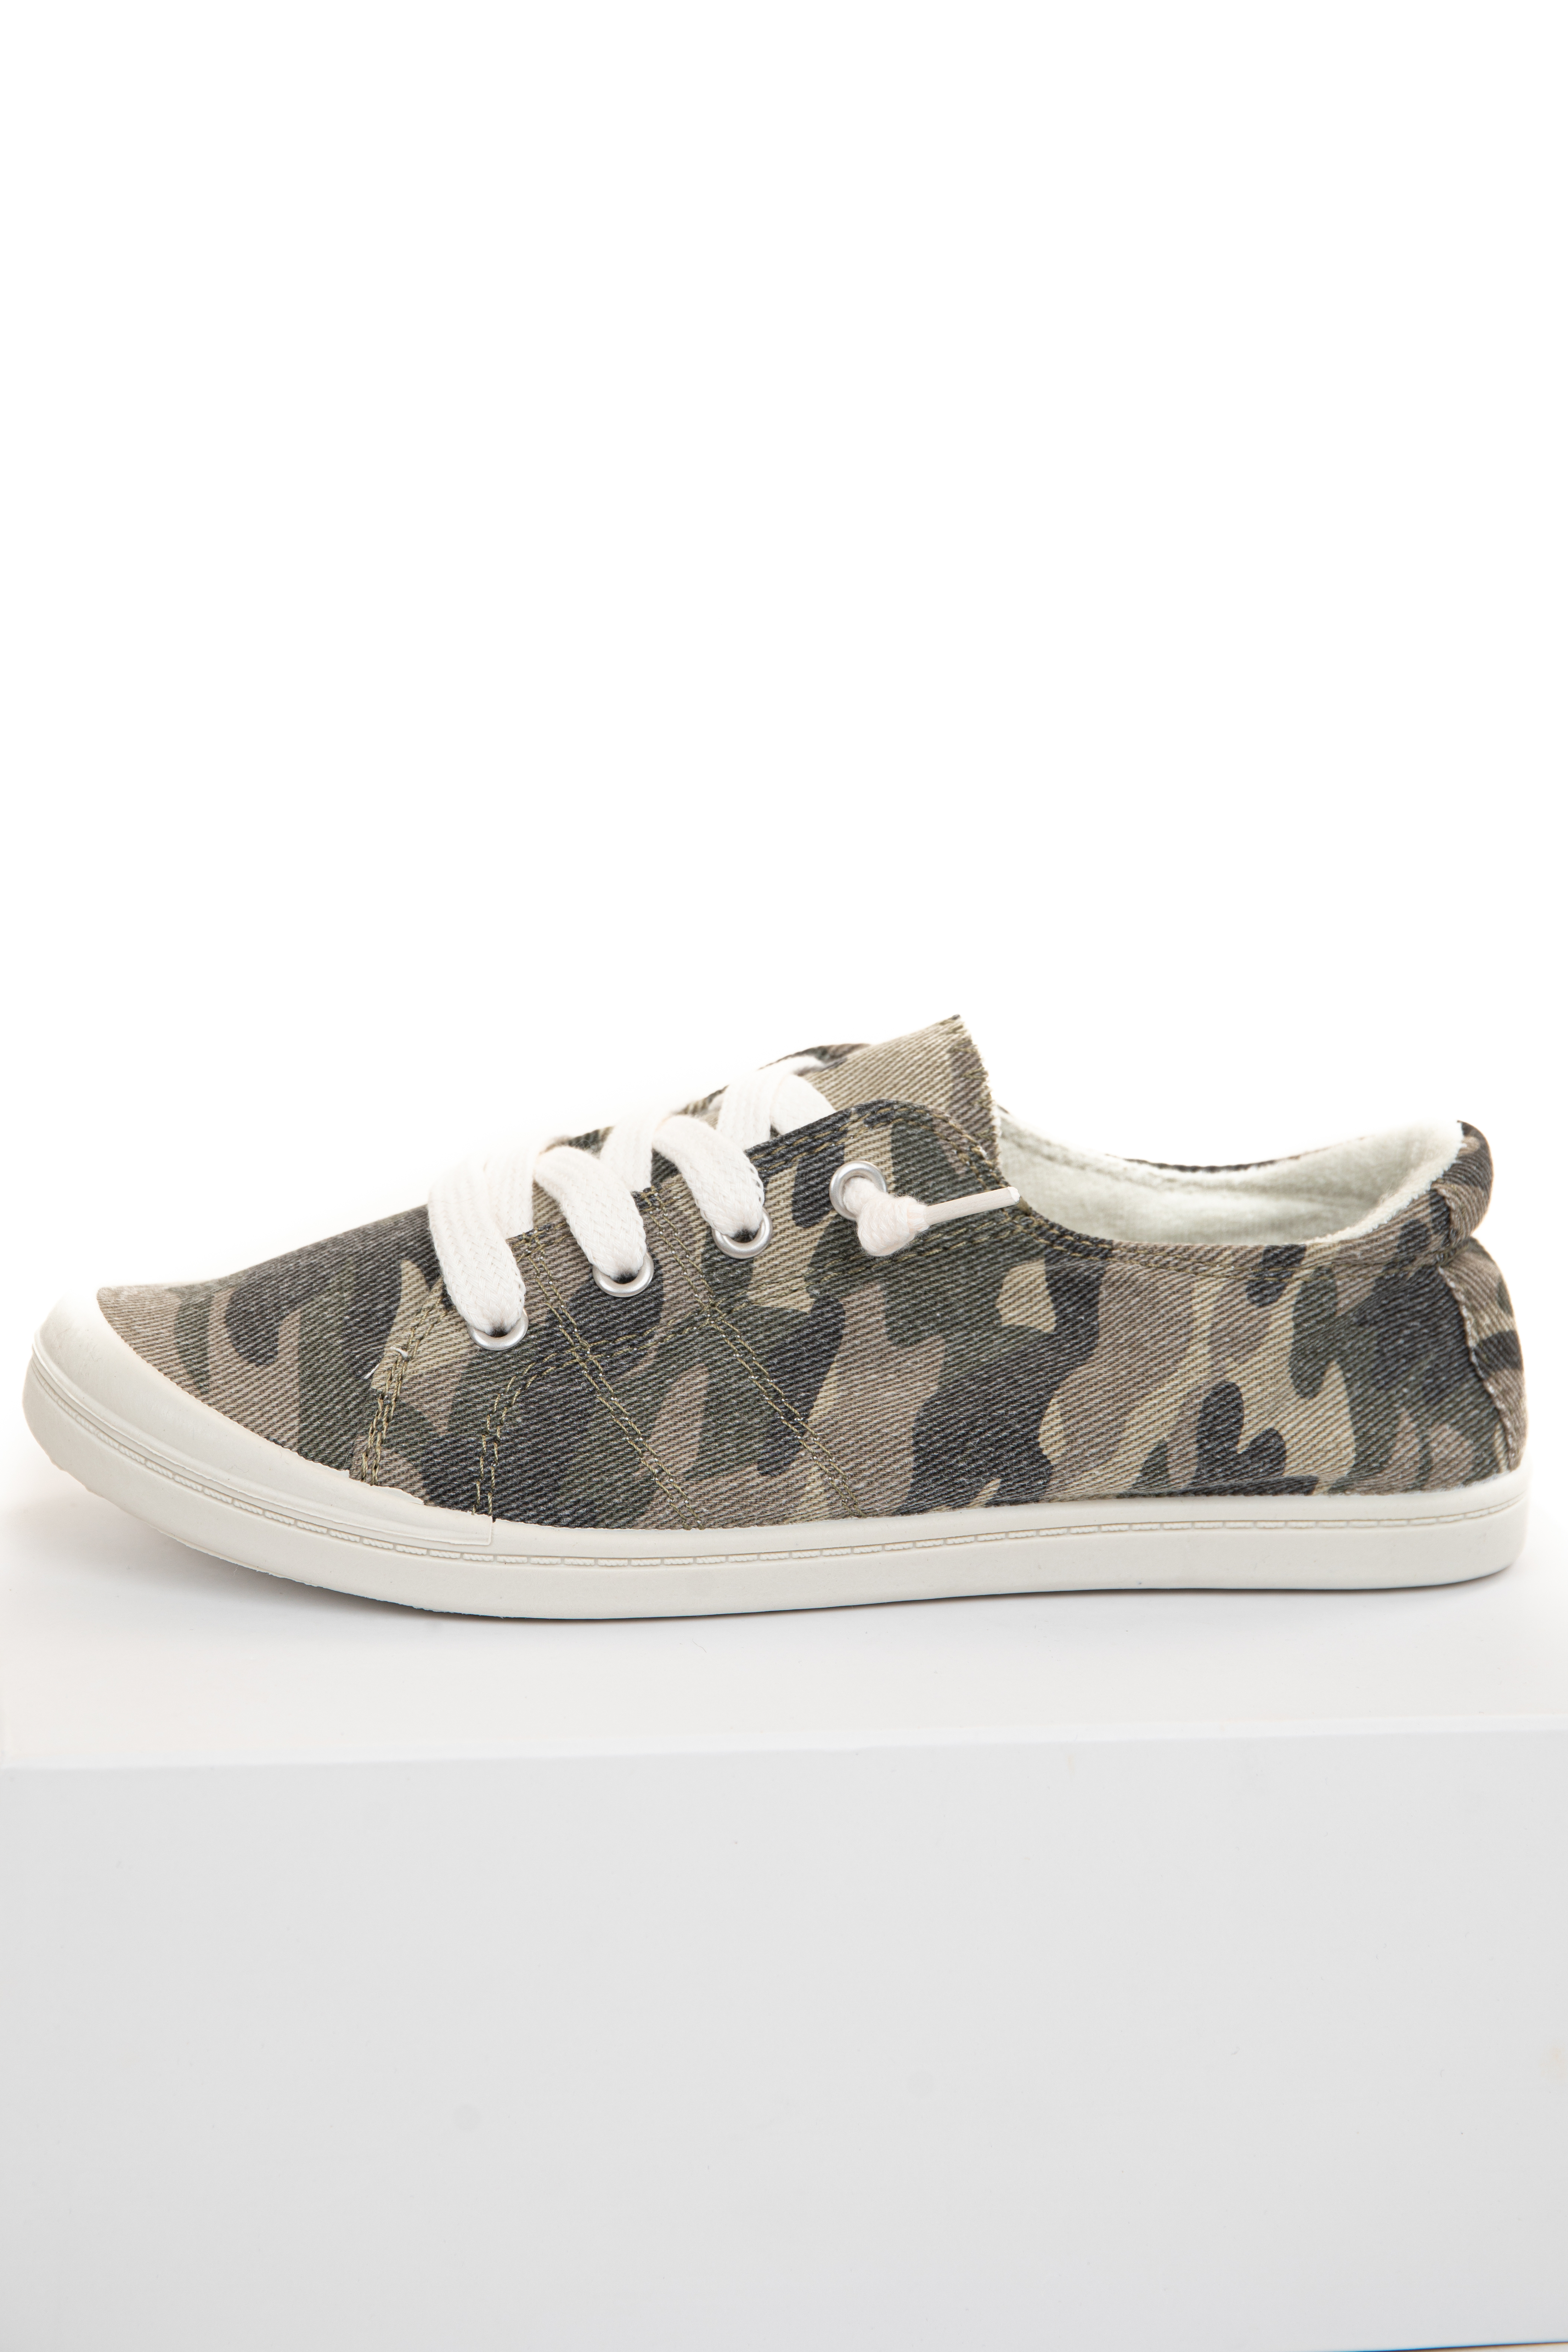 Olive Camouflage Lace Up Low Rise Casual Sneakers